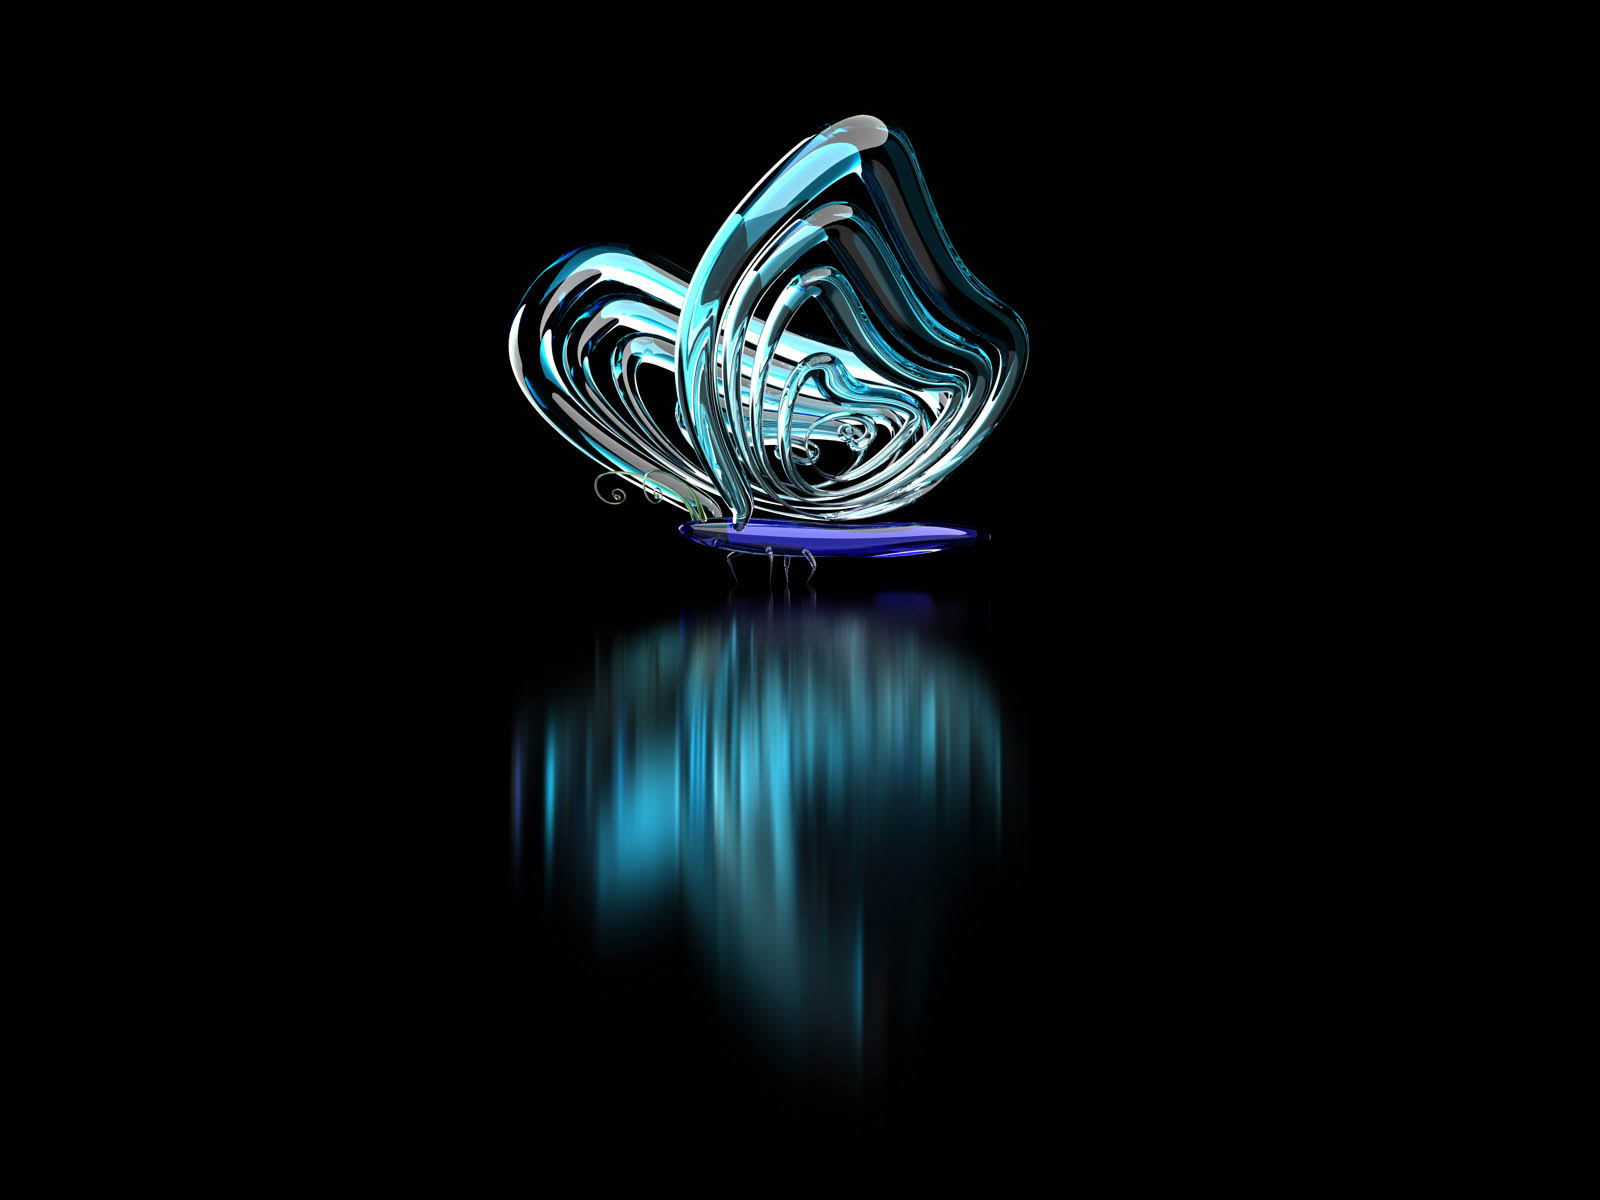 Wallpapers glass butterfly wallpapers for Fondos tridimensionales